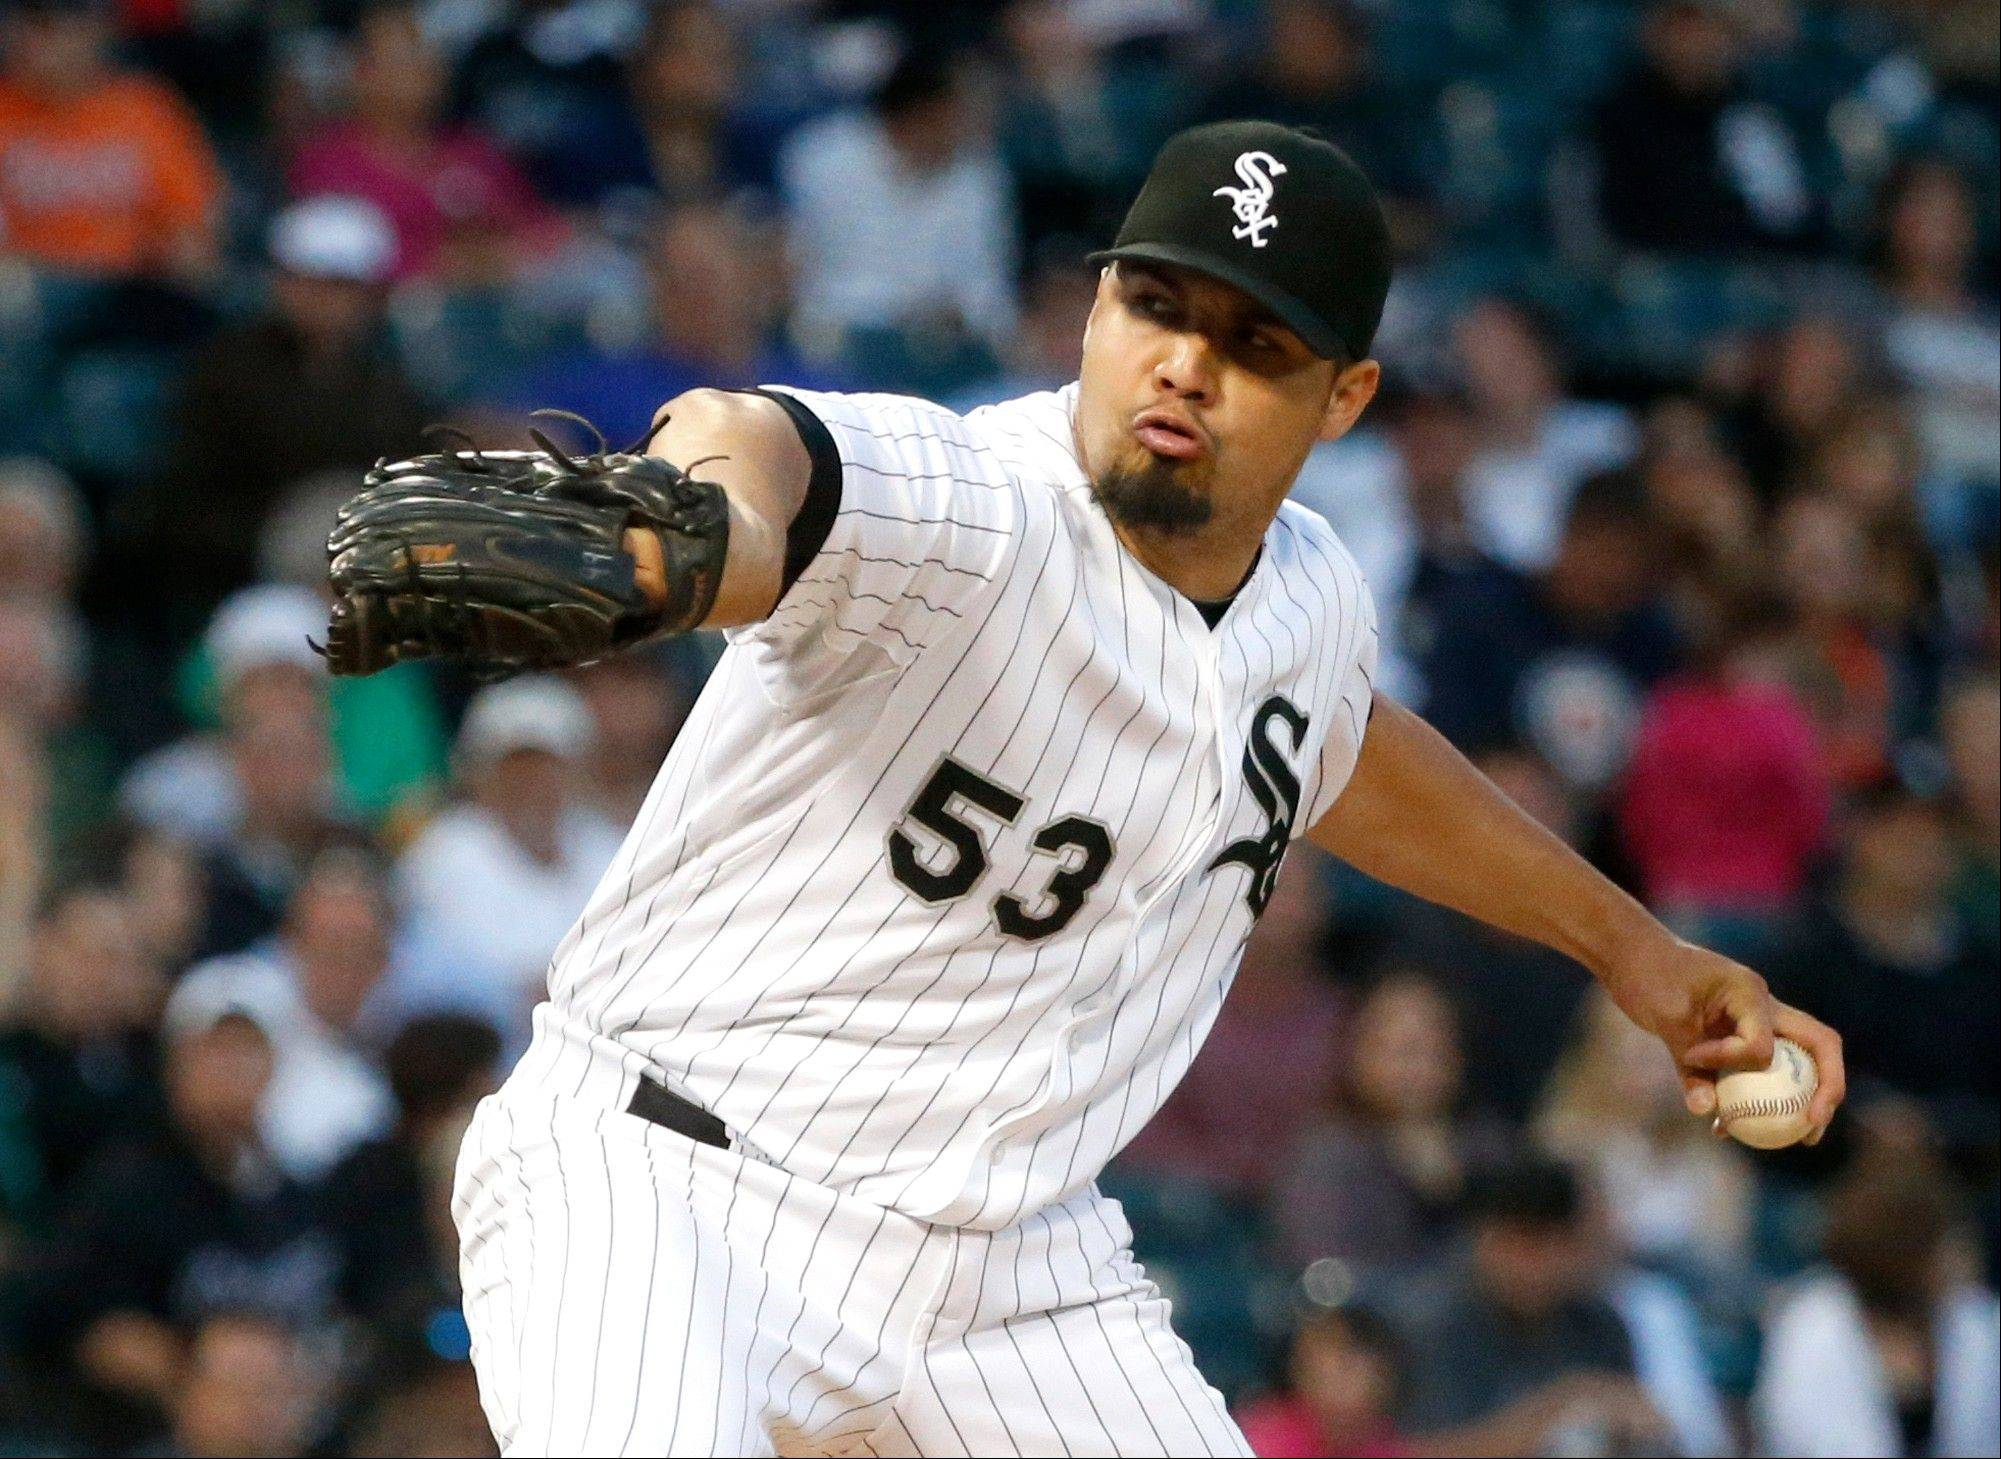 White Sox starting pitcher Hector Santiago, a 25-year-old left-hander who went 4-9 with a 3.56 ERA in 34 games last season, is headed to Los Angeles as part of a three-way trade with the Angels, Diamondbacks and White Sox.